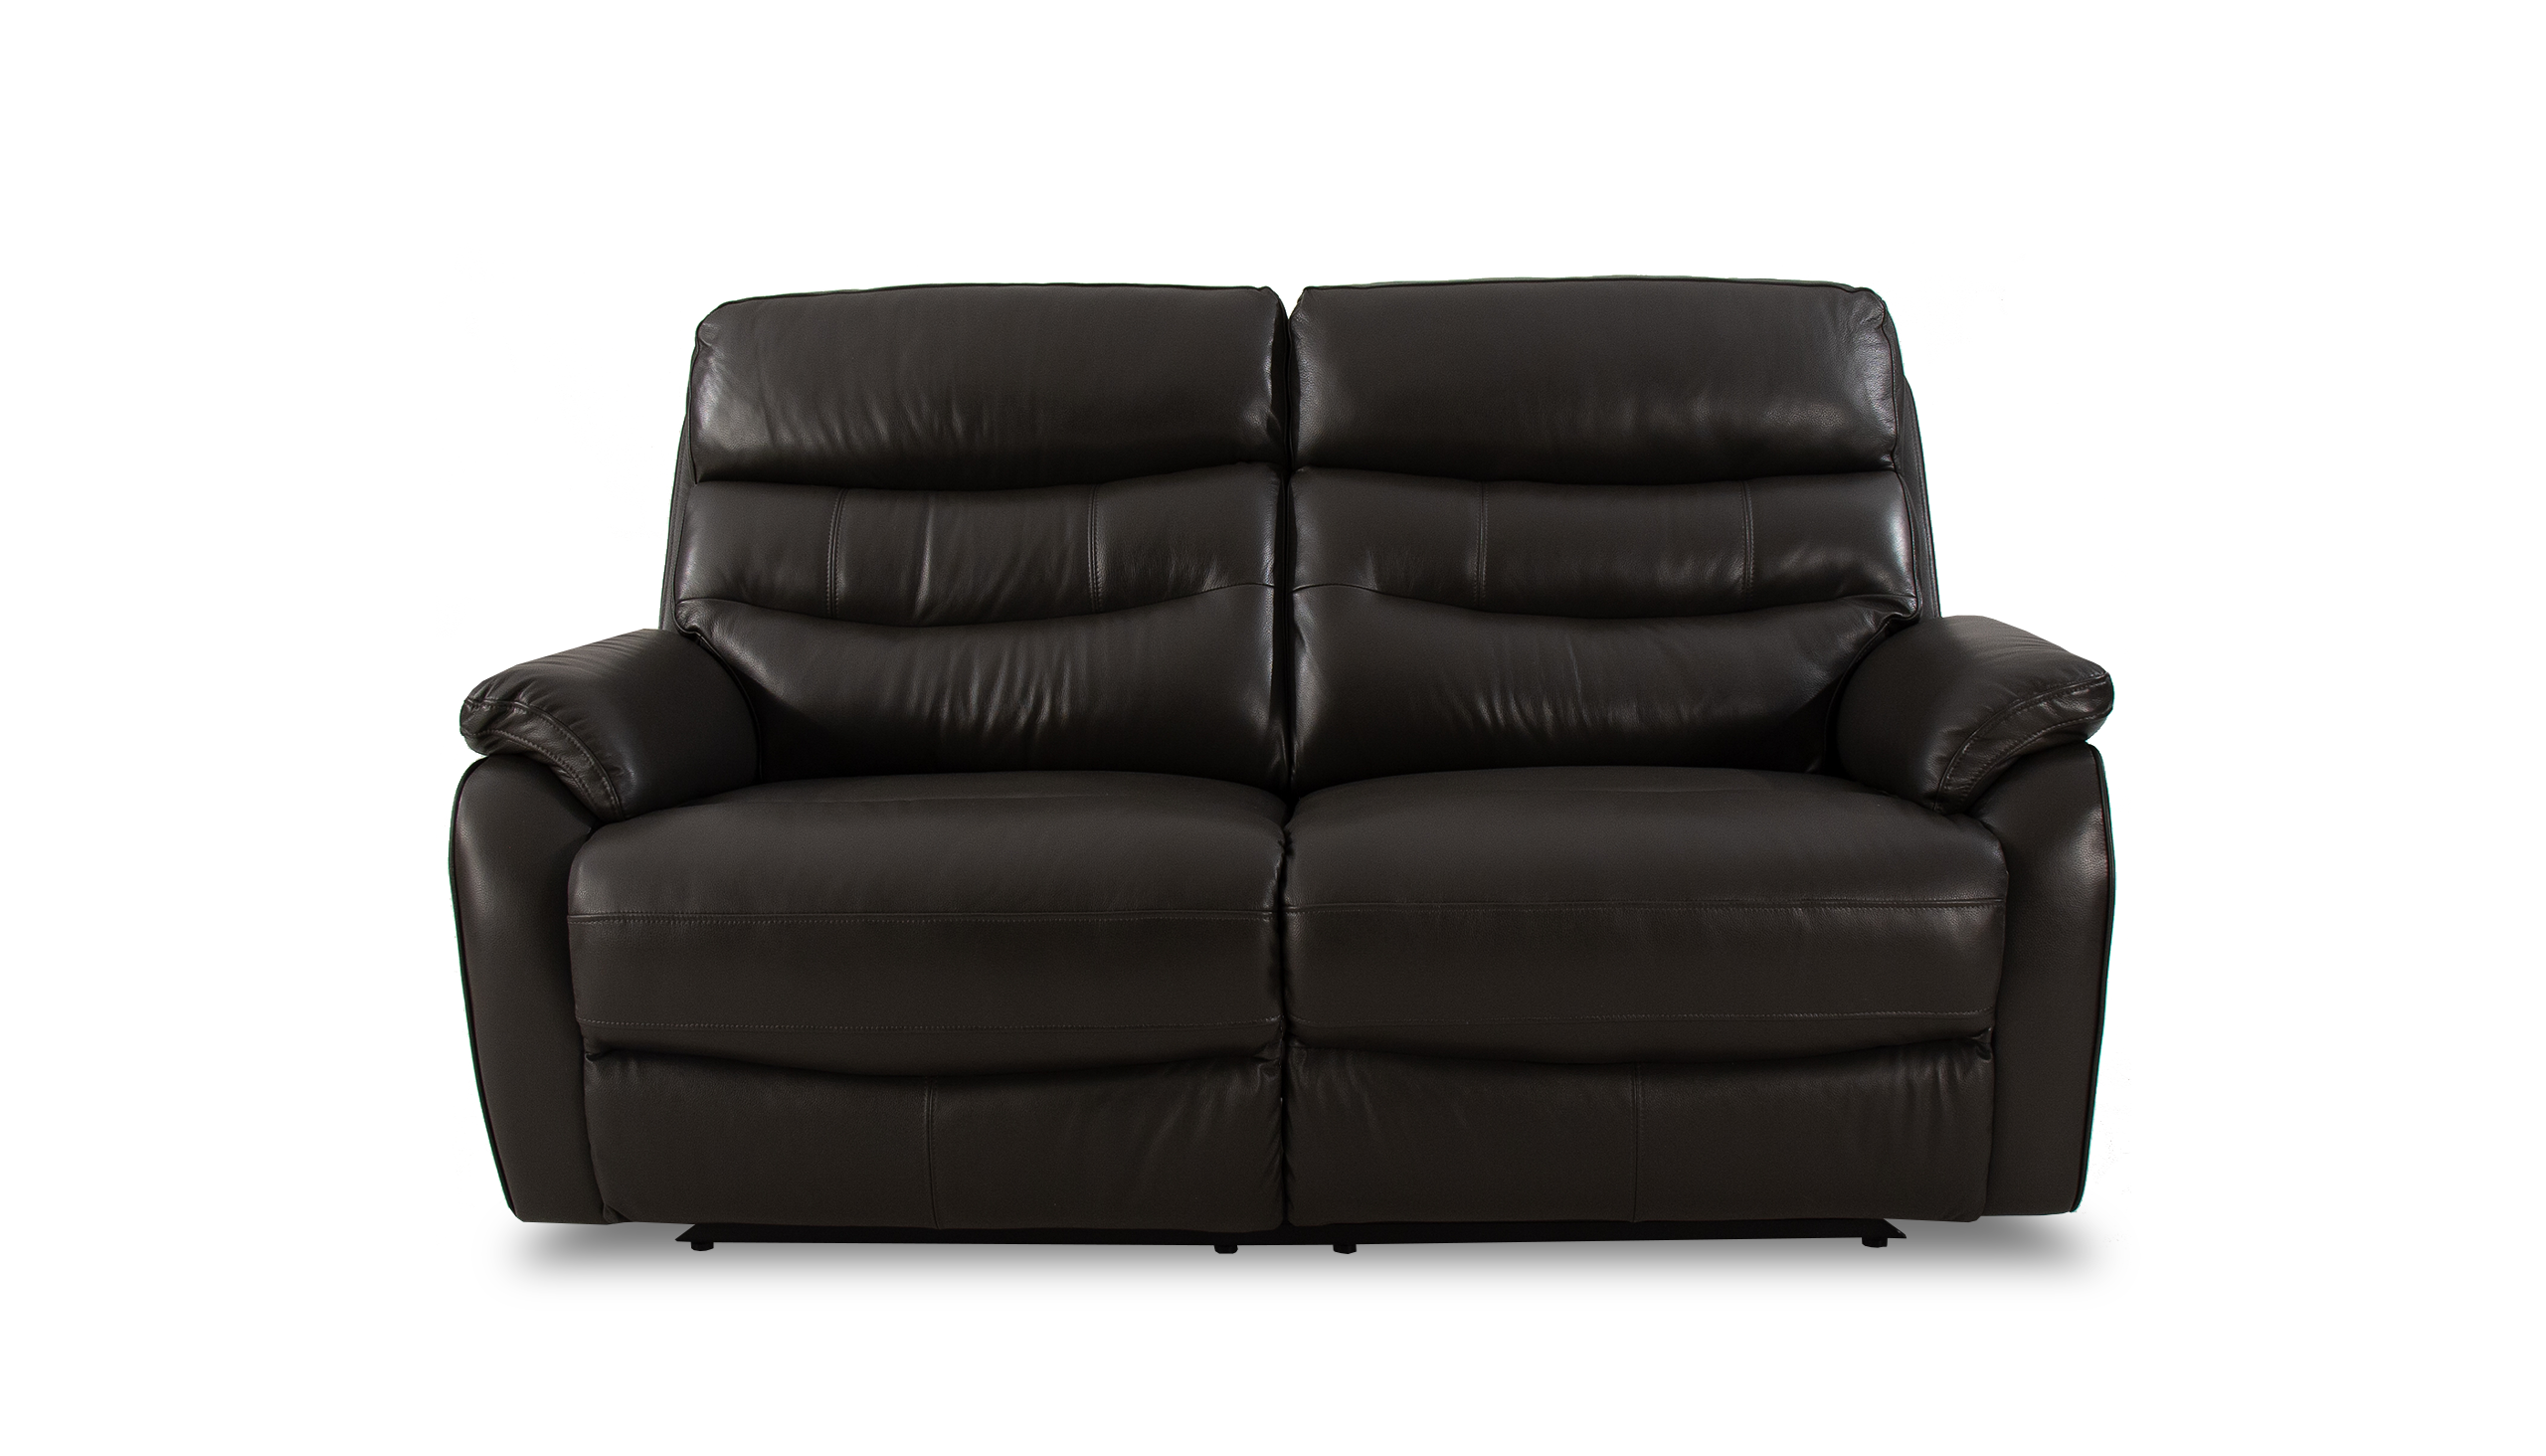 James 2 Seater Recliner Sofa